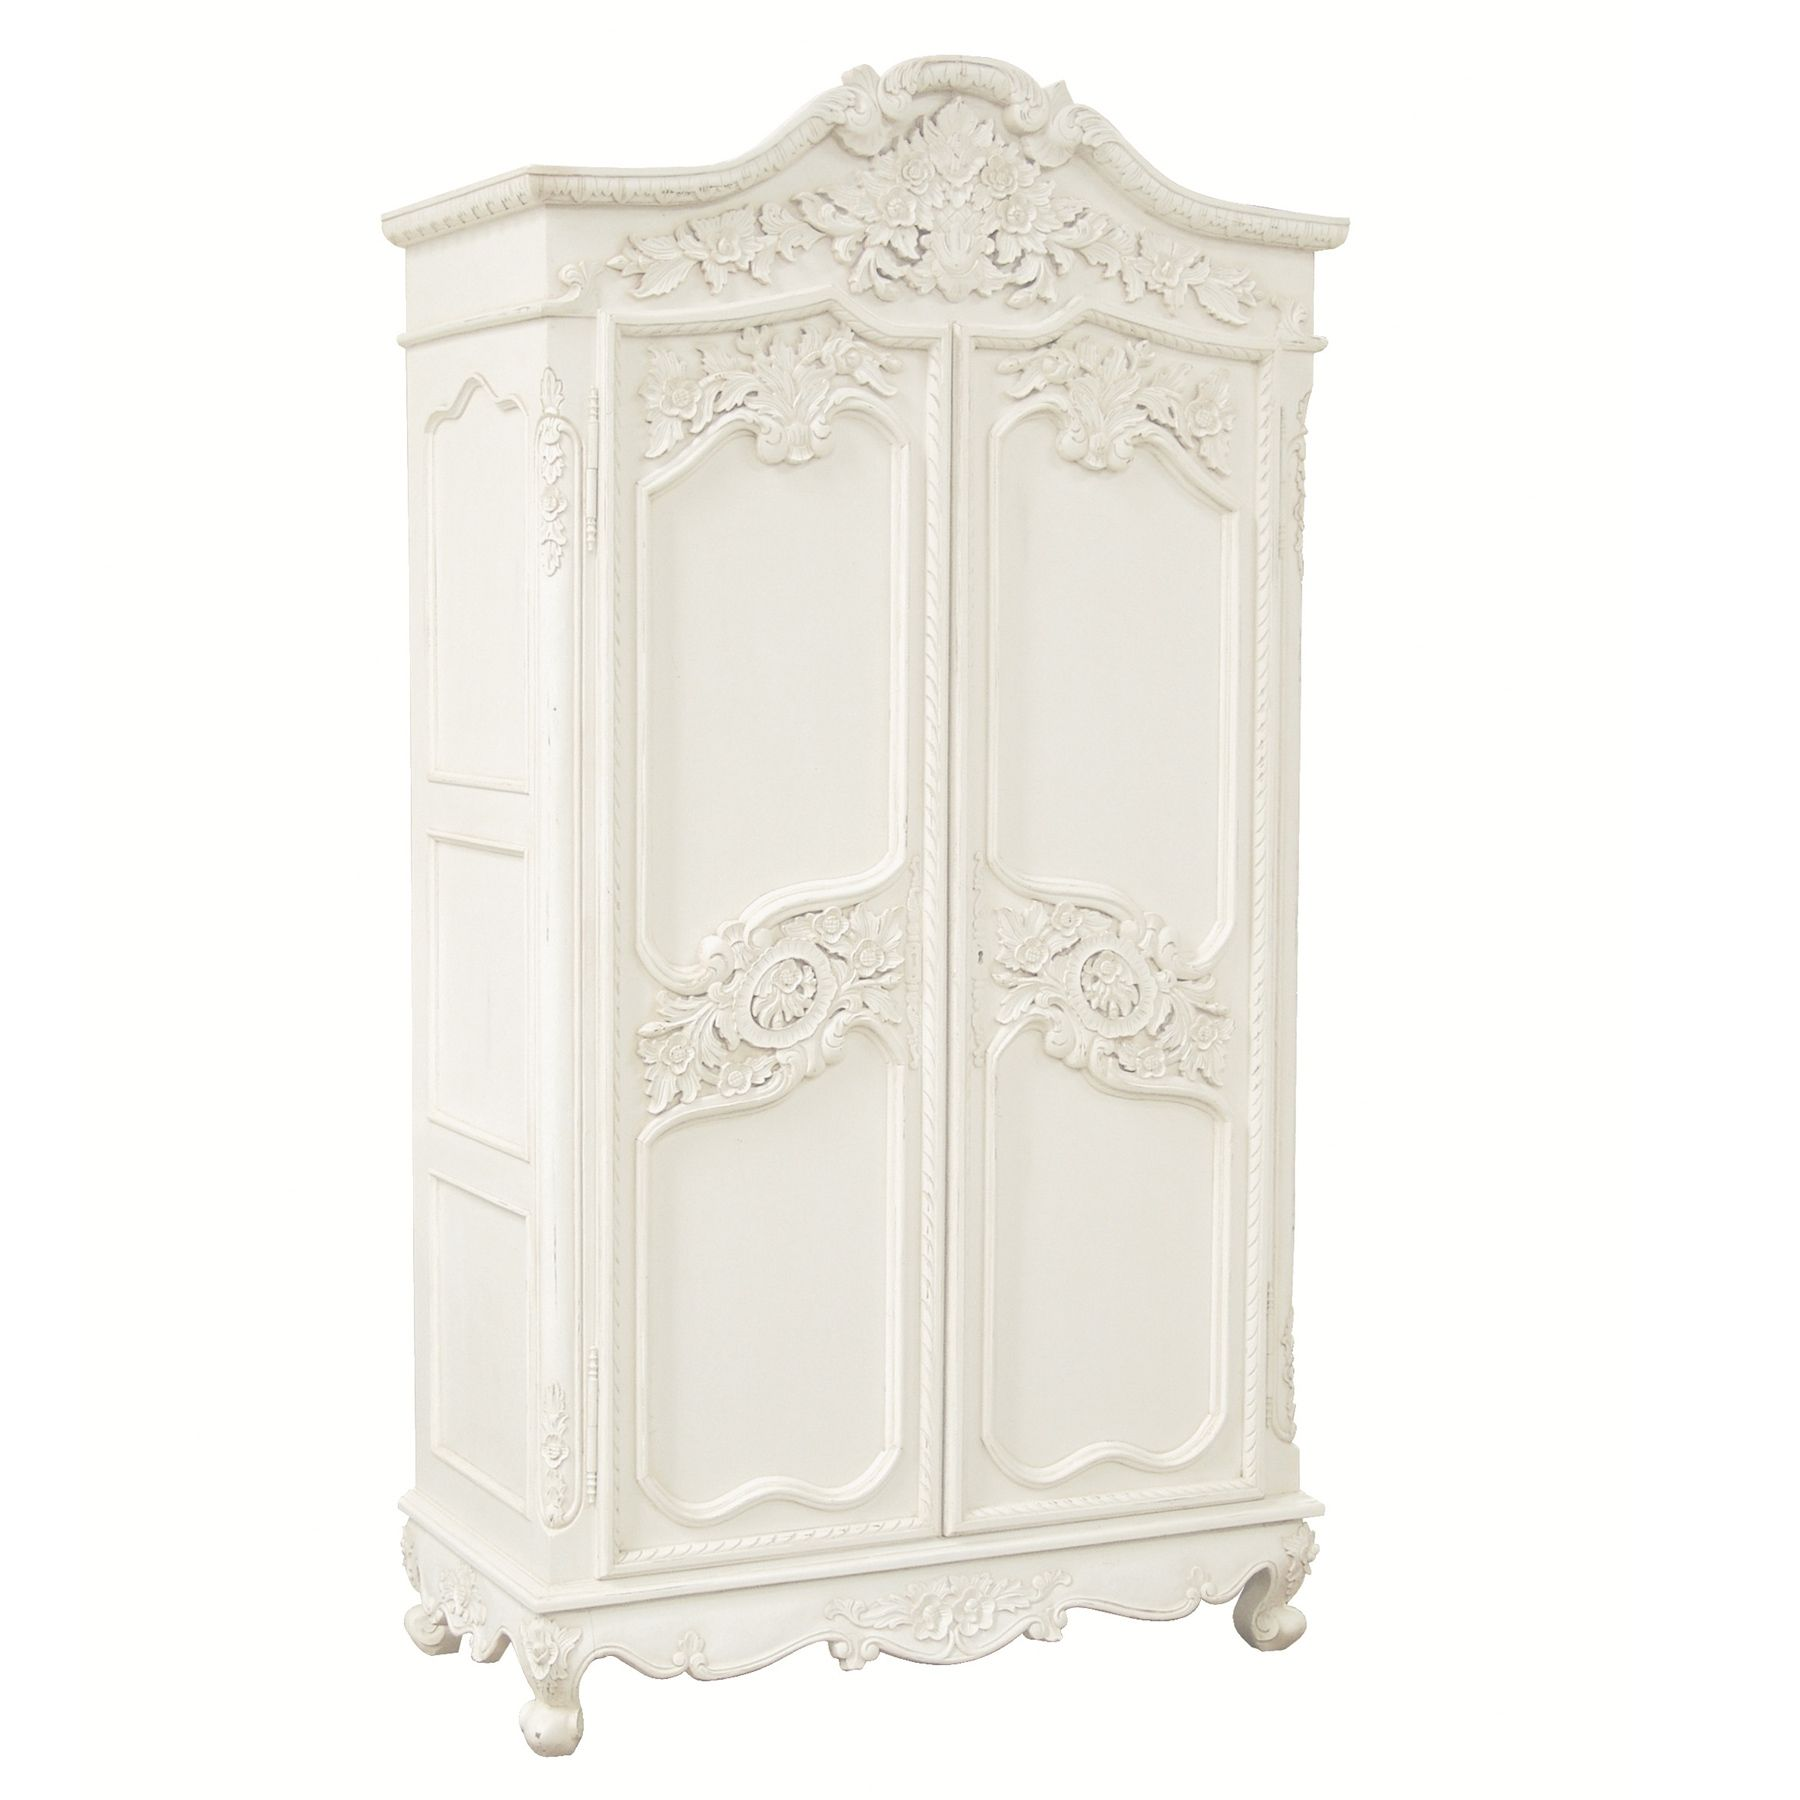 Http Www Sweetpeaandwillow Com Beds Bedroom Armoires Wardrobes Classical White Carved Armoire Shabby Chic Wohnzimmer Chic Wohnzimmer Coole Möbel